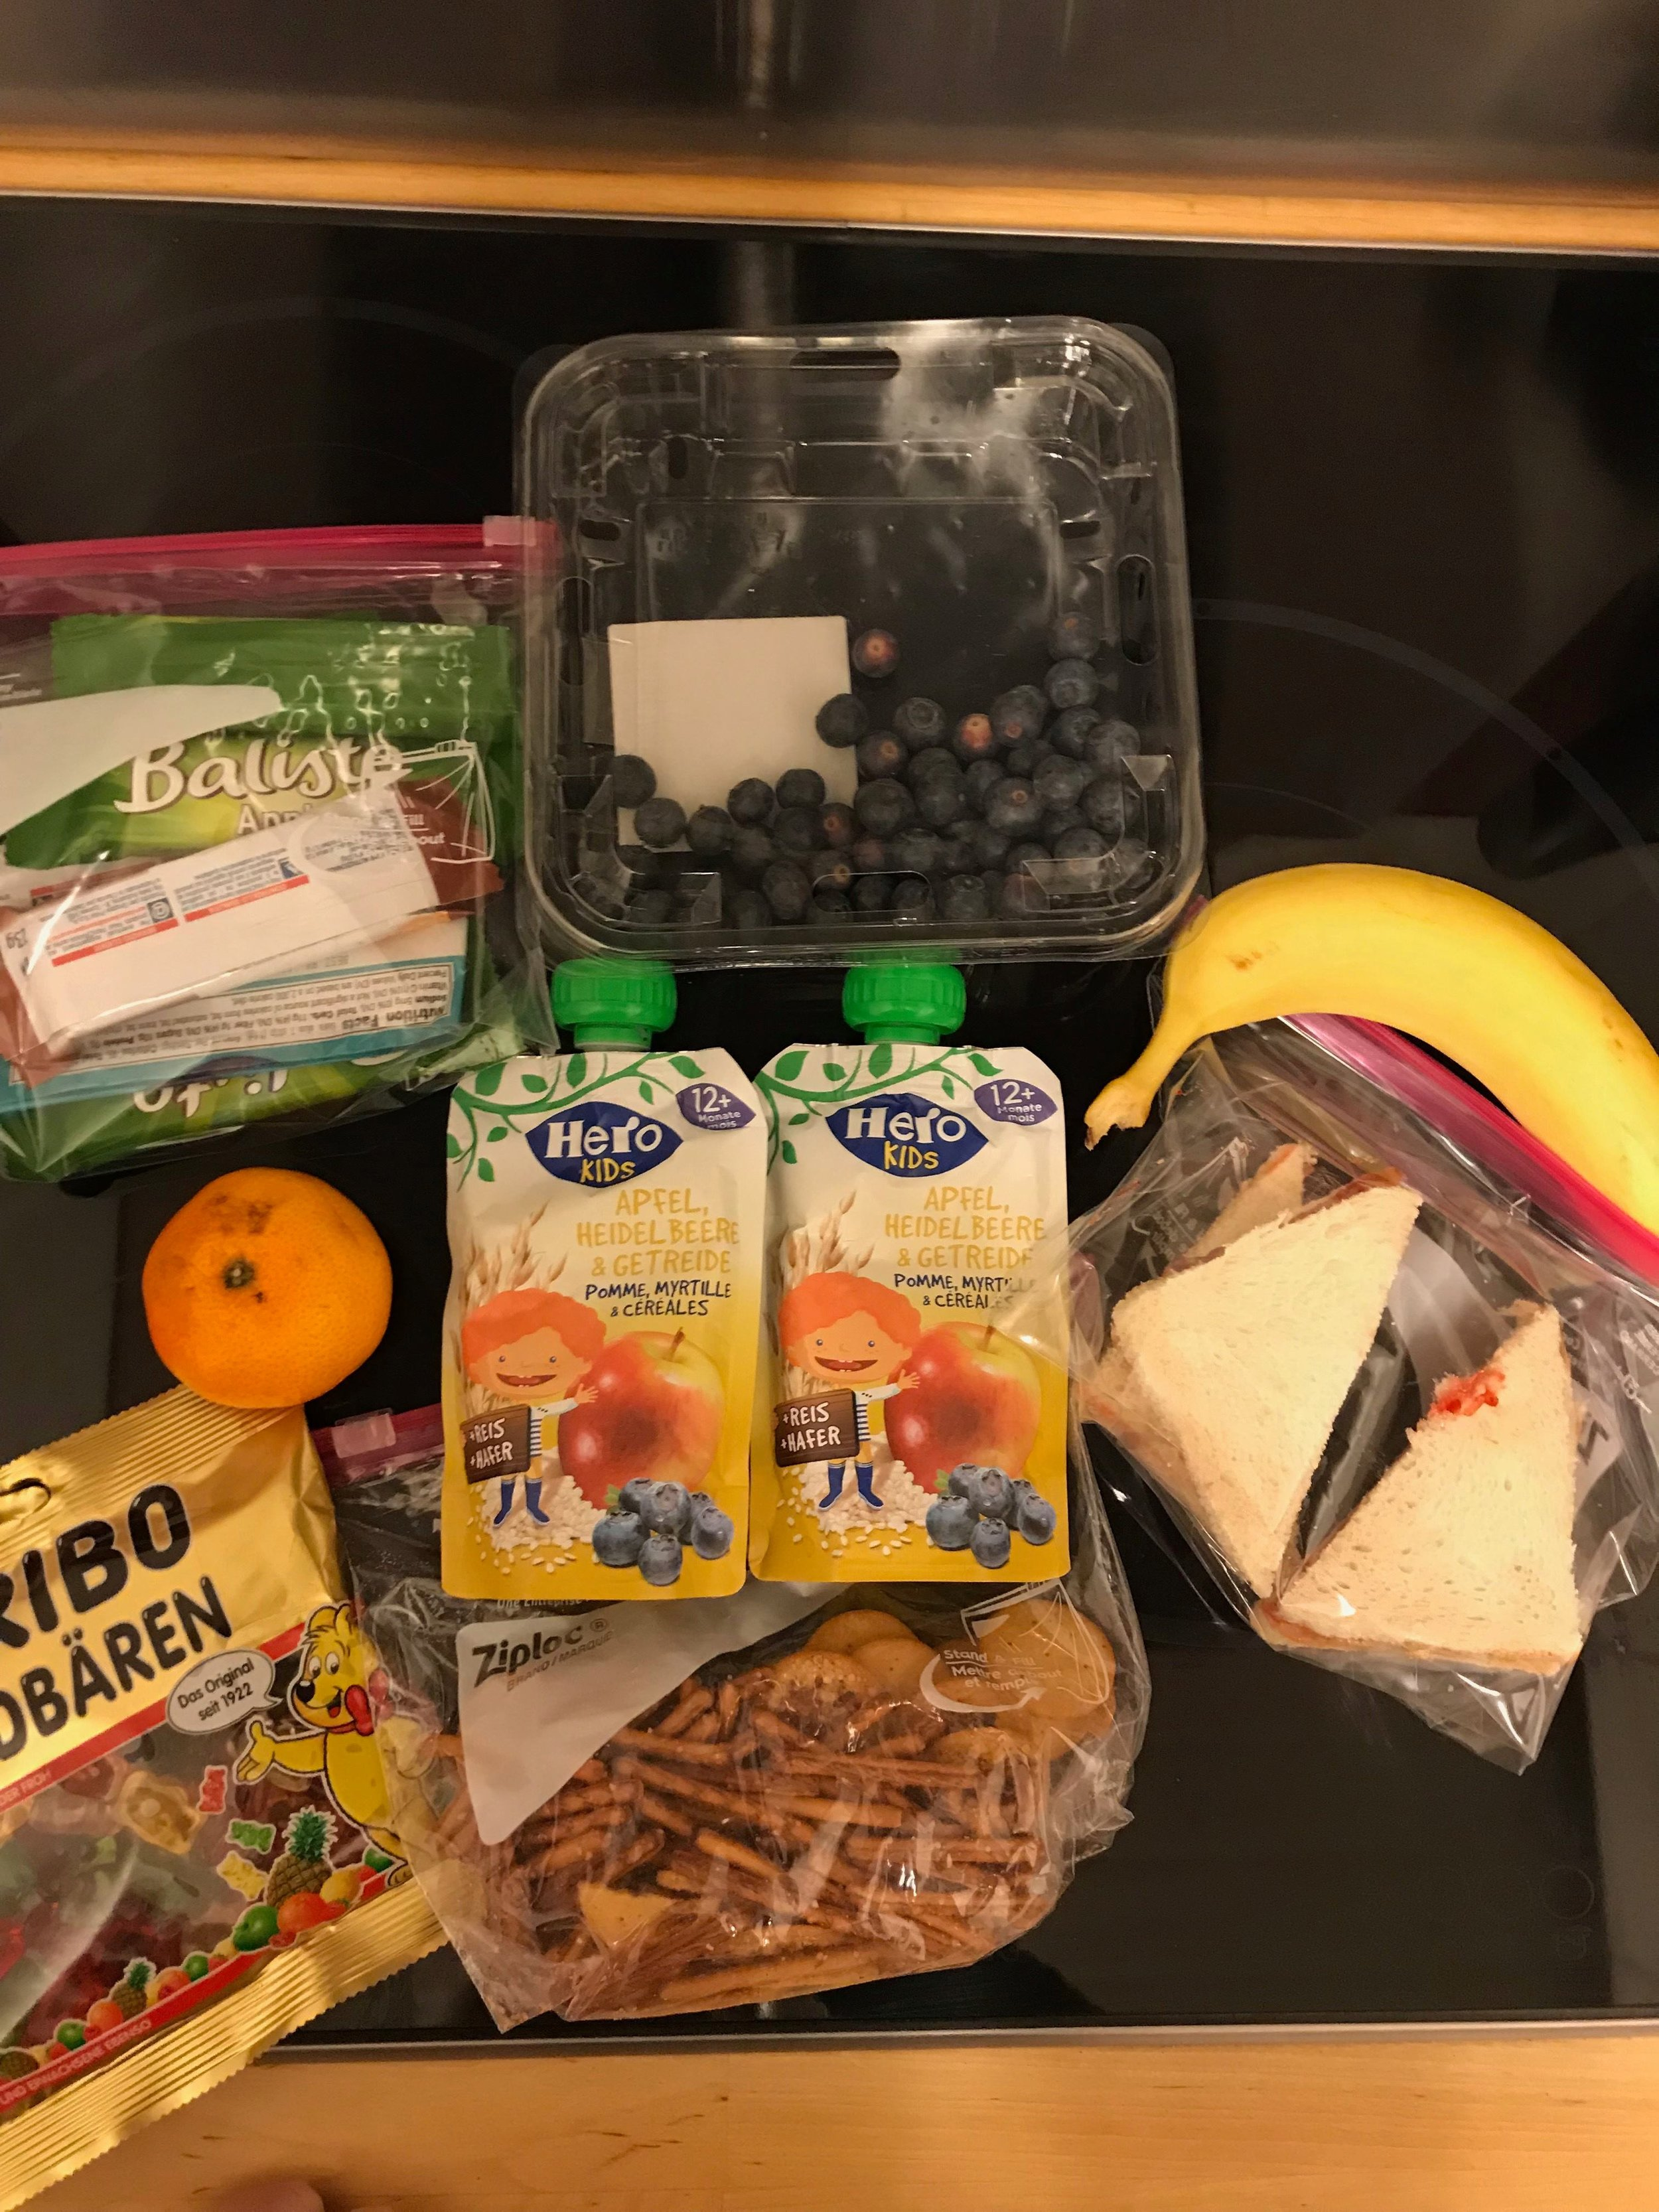 This is what we packed for a single Day outing for the kids -- sandiwches, fruit, pouches, pretzels and gummy bears for photo bribery